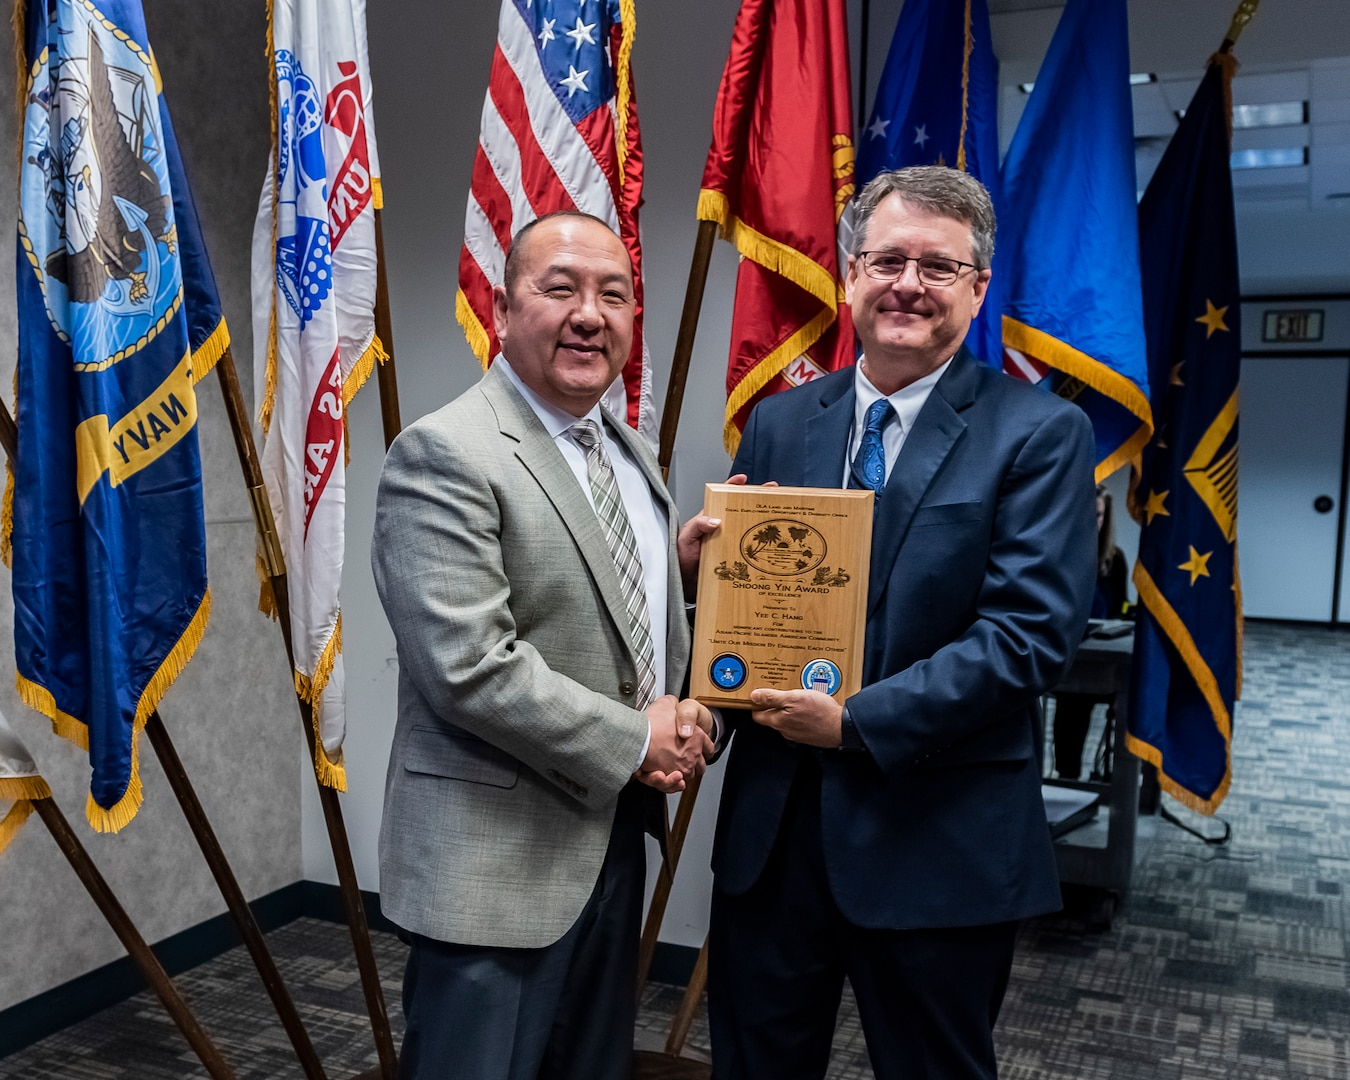 The Shoong Yin award winner being presented with the award by a member of the DLA Land and Maritime command staff.